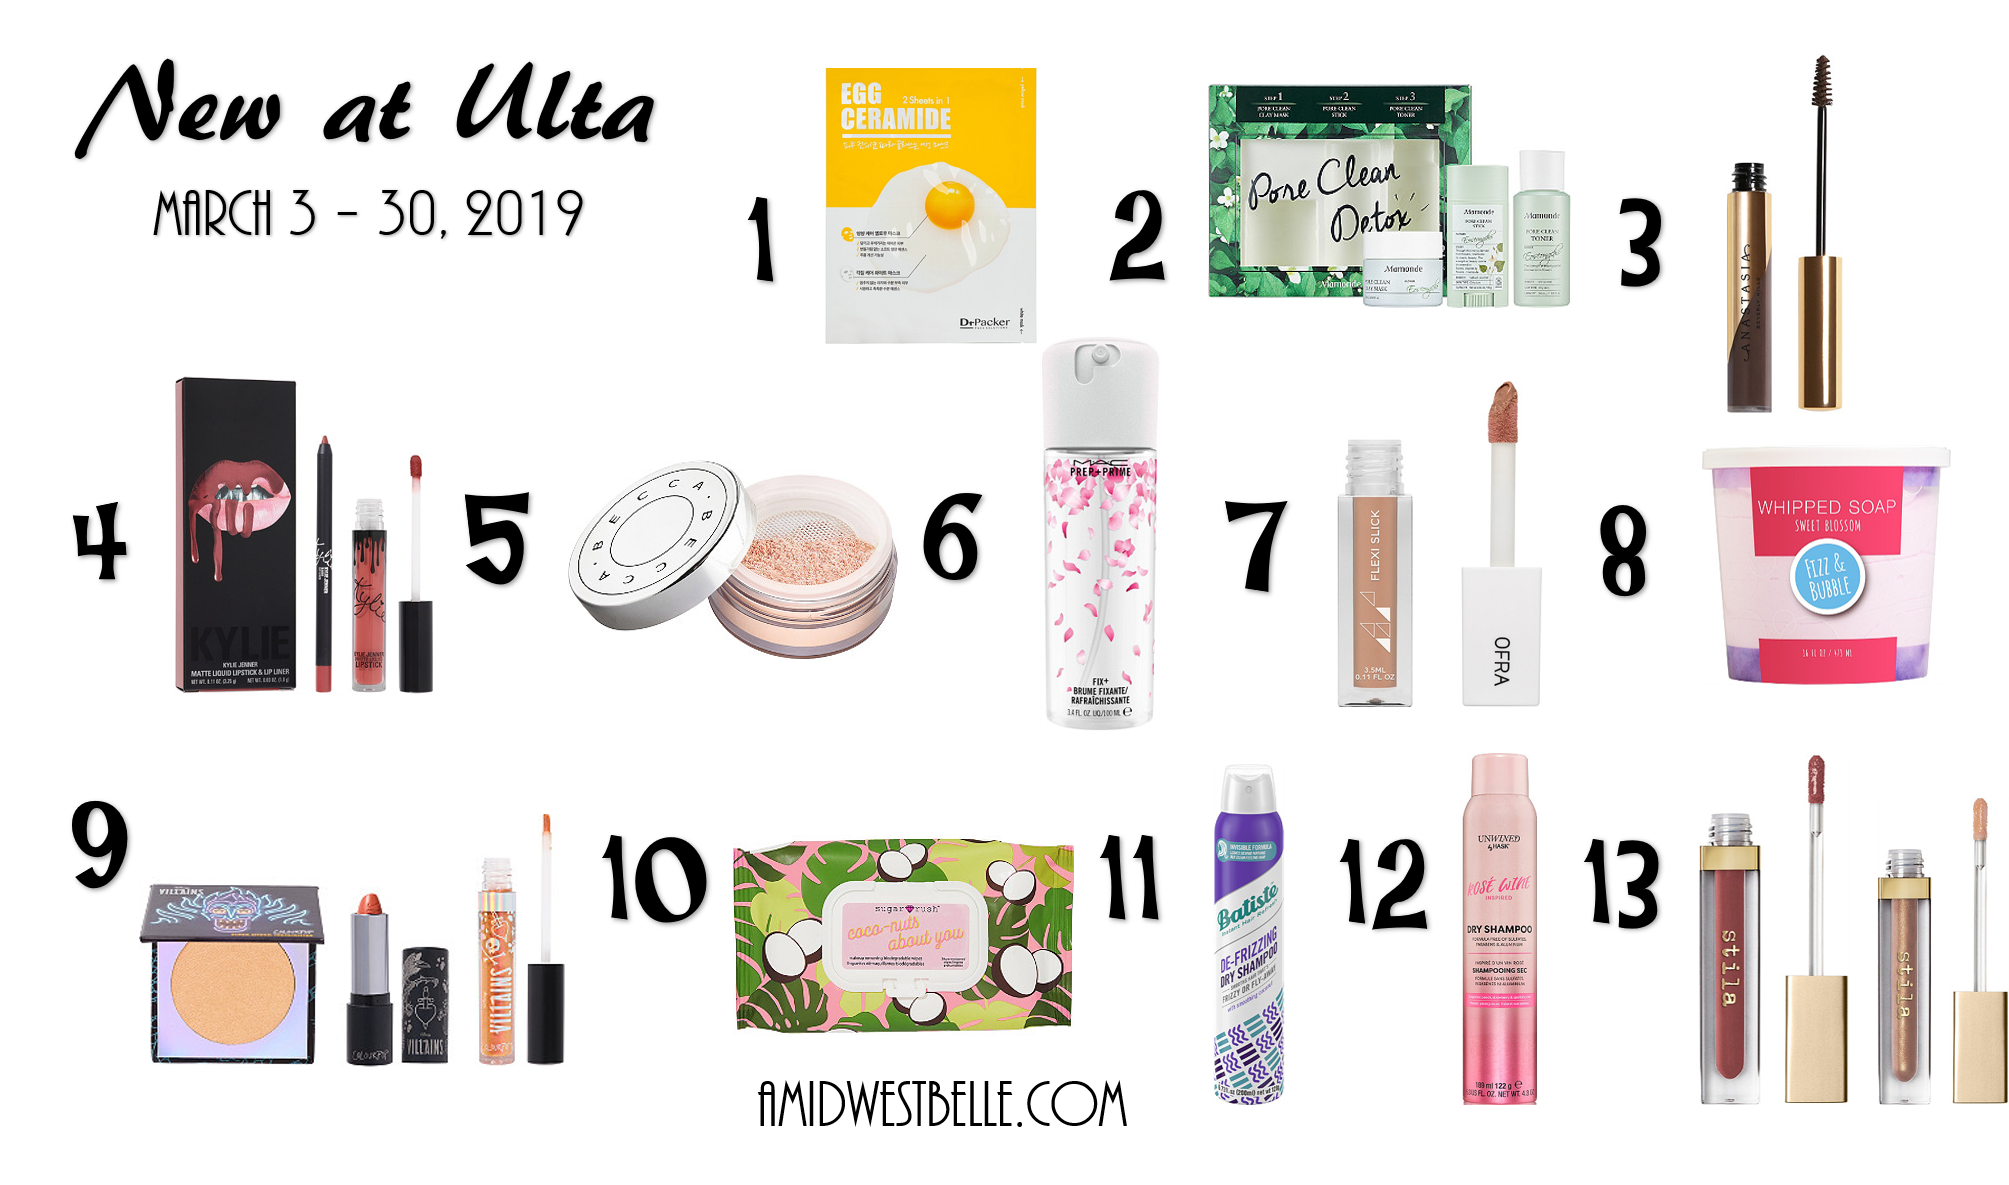 New At Ulta - March 3 to March 30, 2019 - A Midwest Belle